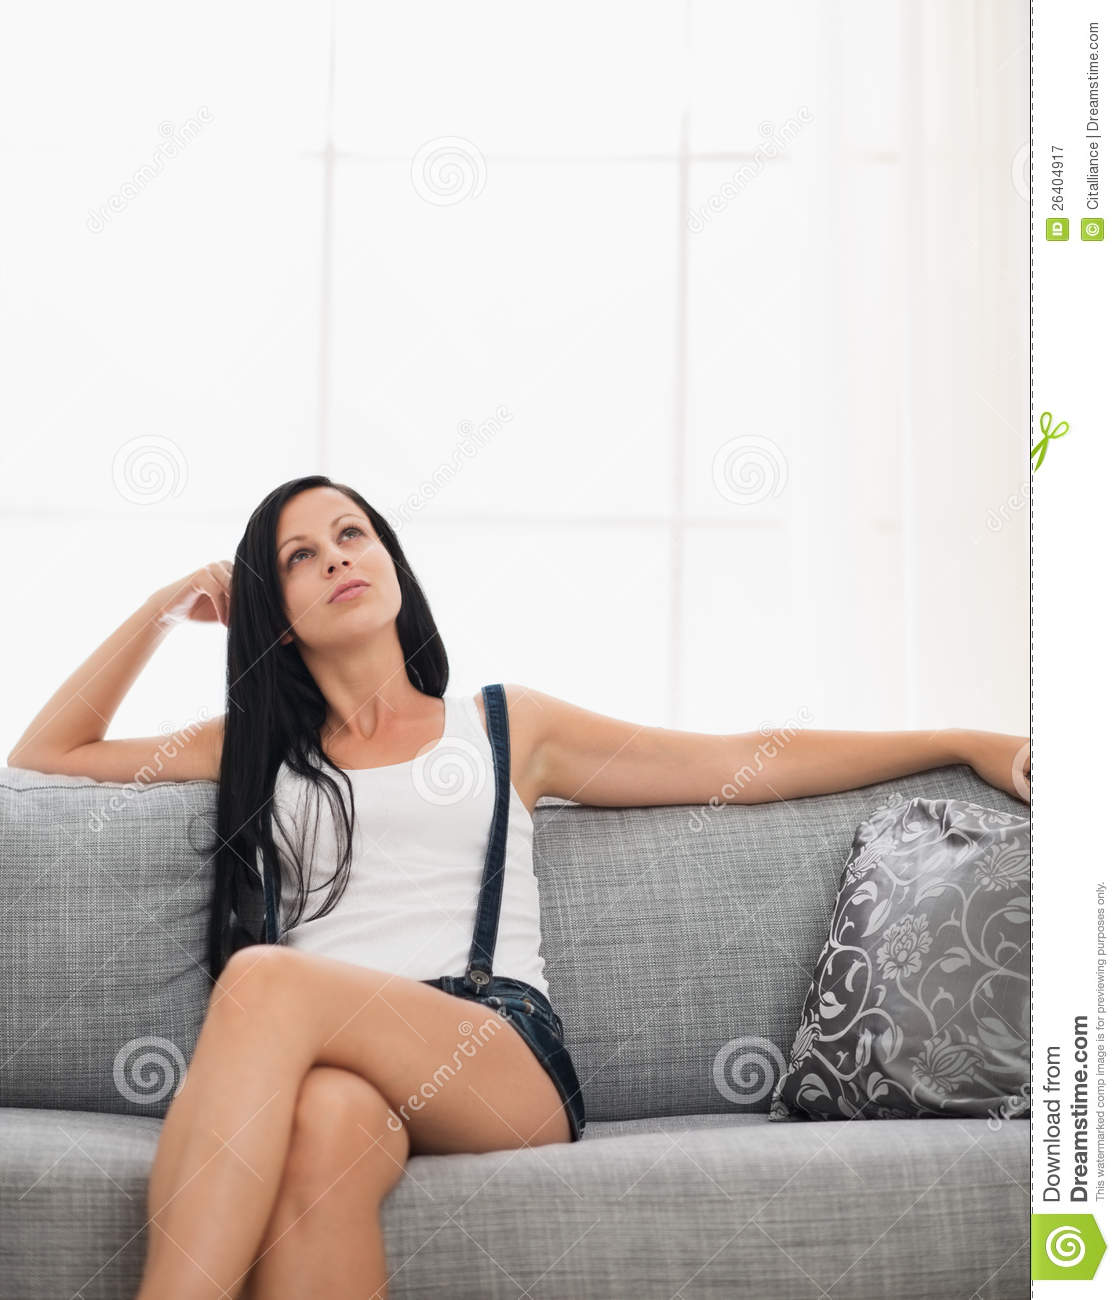 Thoughtful Girl Sitting On Couch In Living Room Royalty Free Stock ...